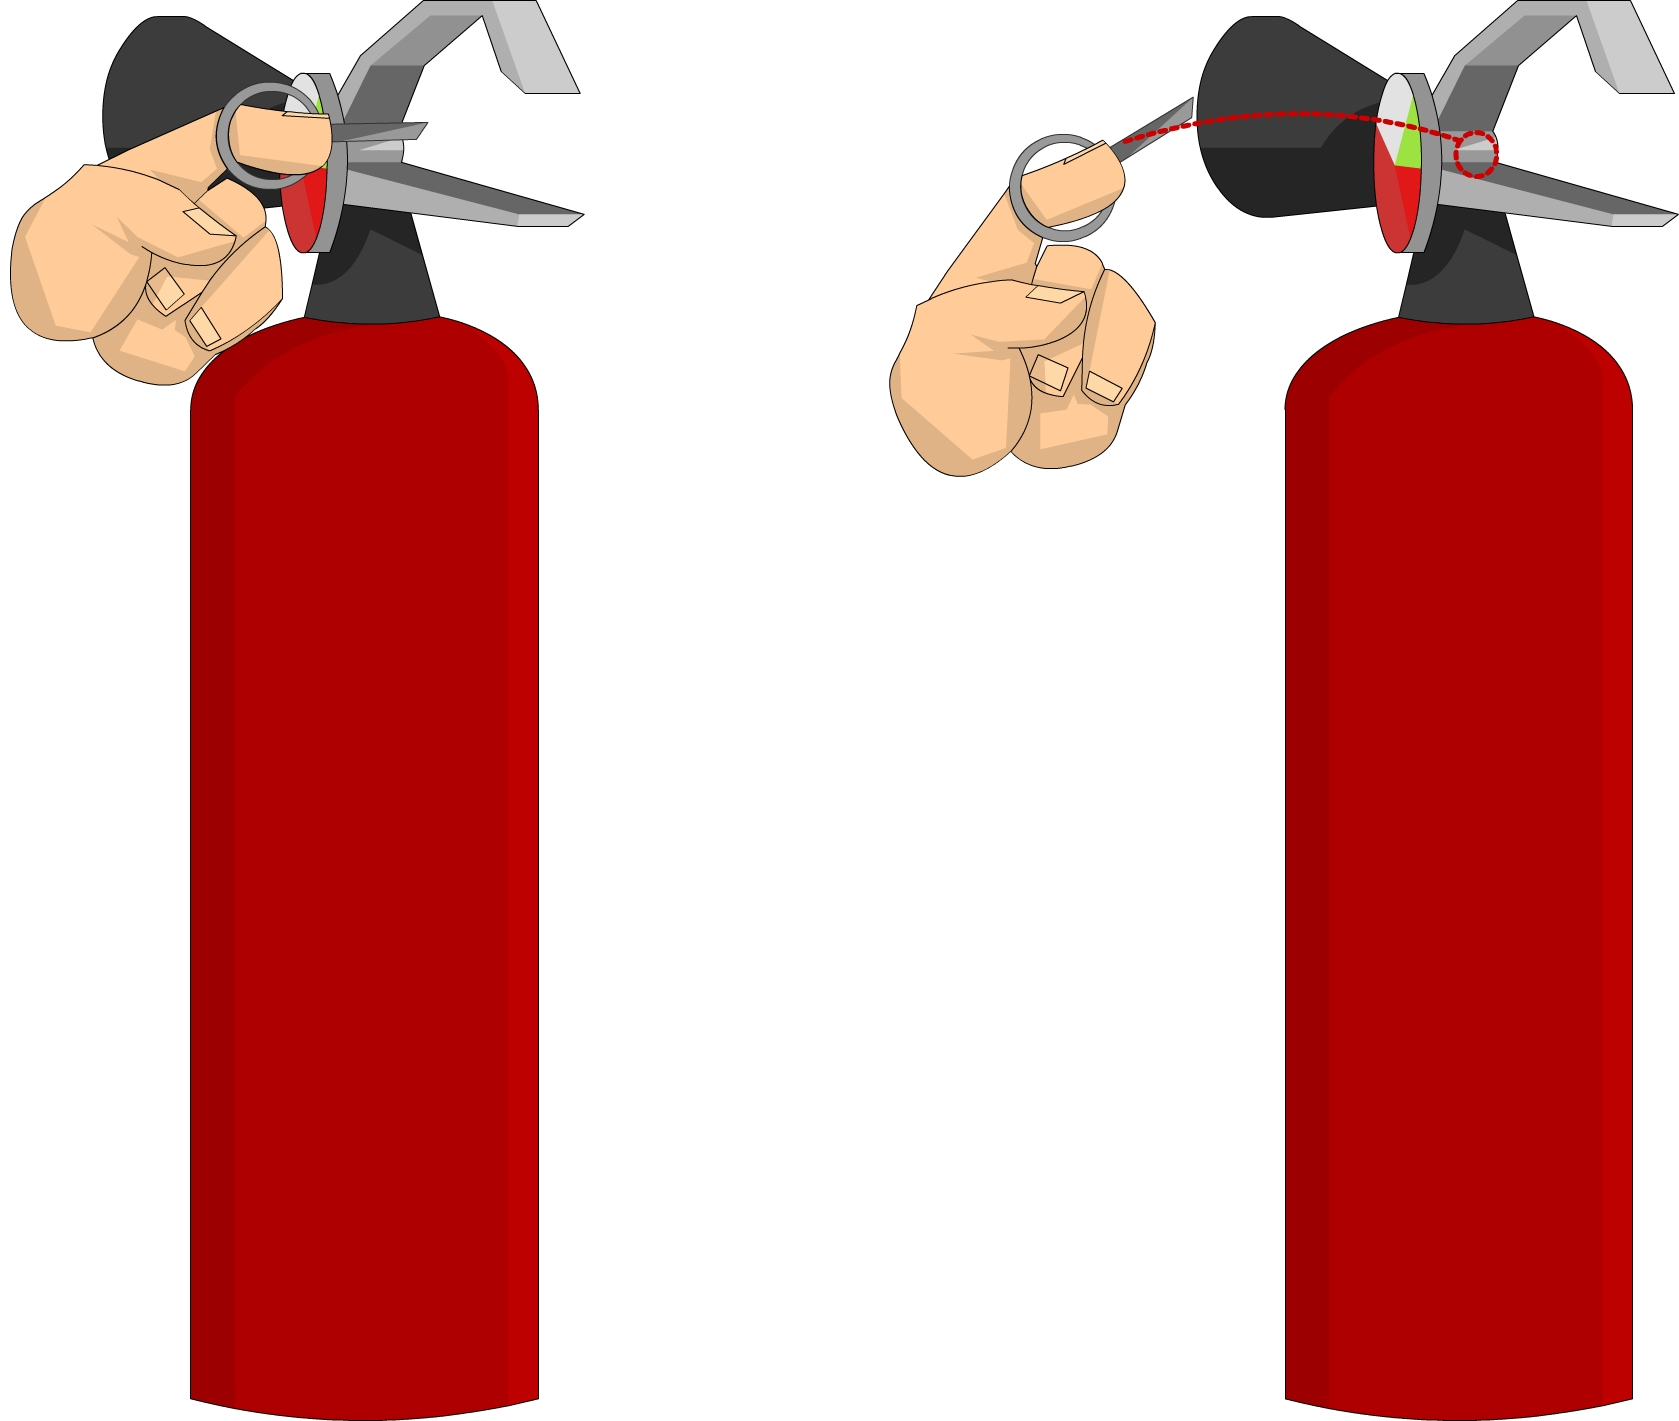 fire-extinguisher-pin.jpg